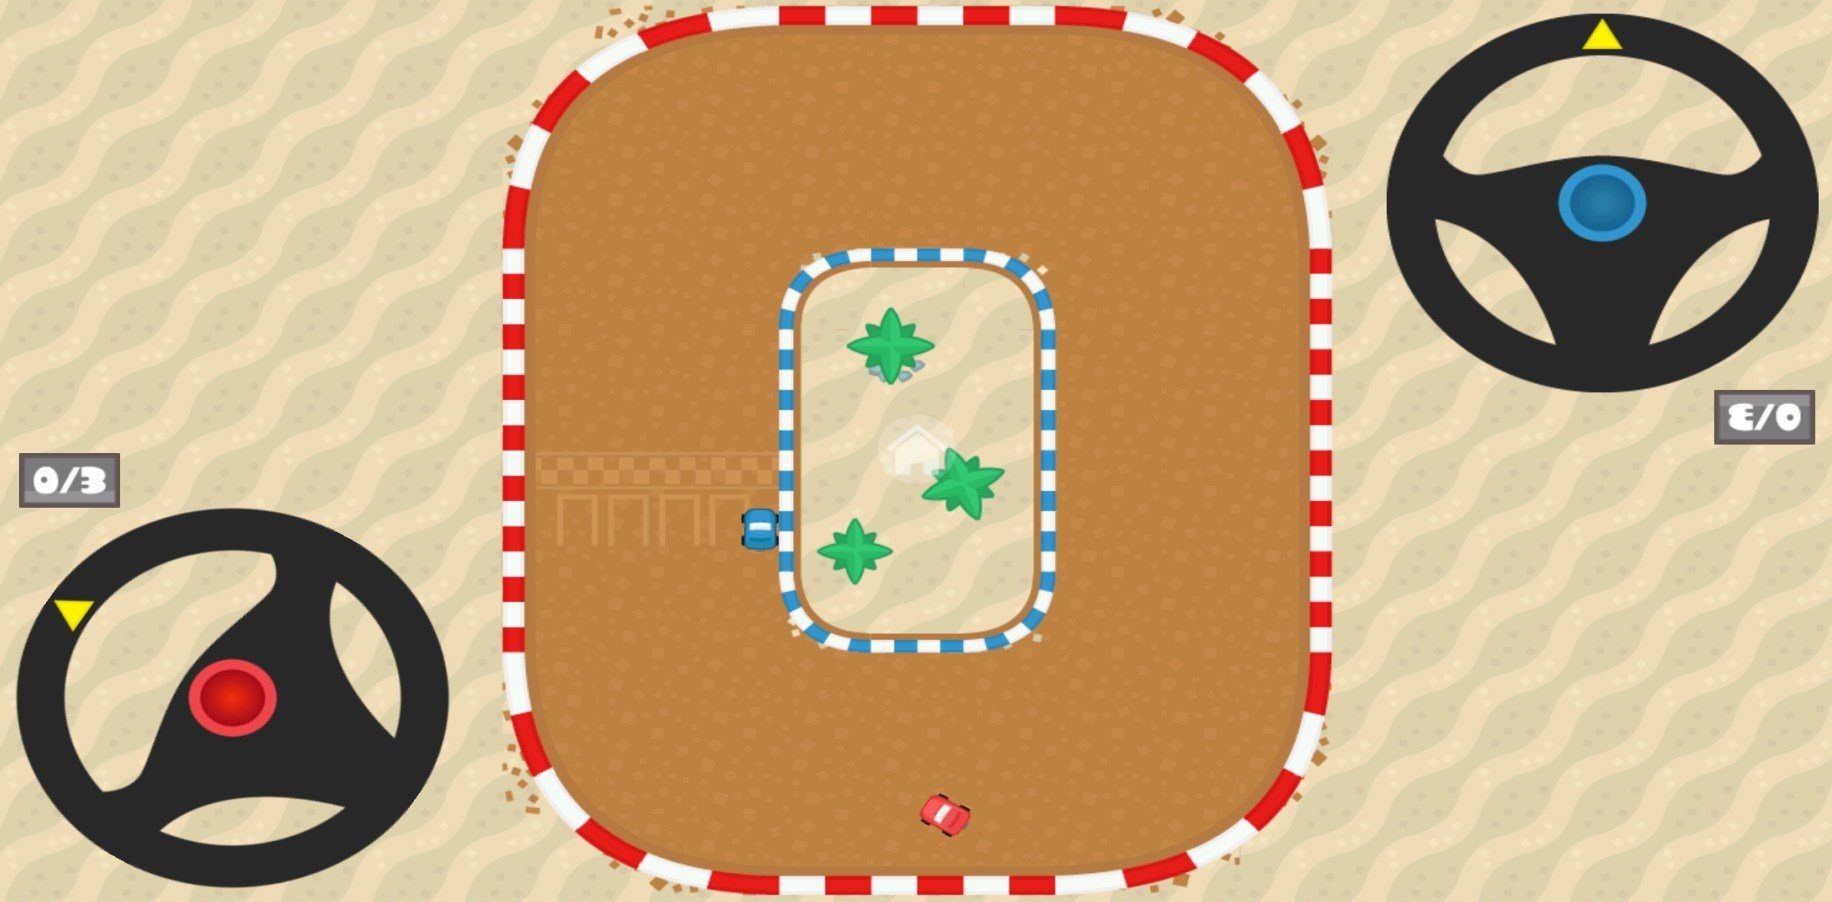 2 3 4 Player Mini Games 2 1 9 - Download for Android APK Free